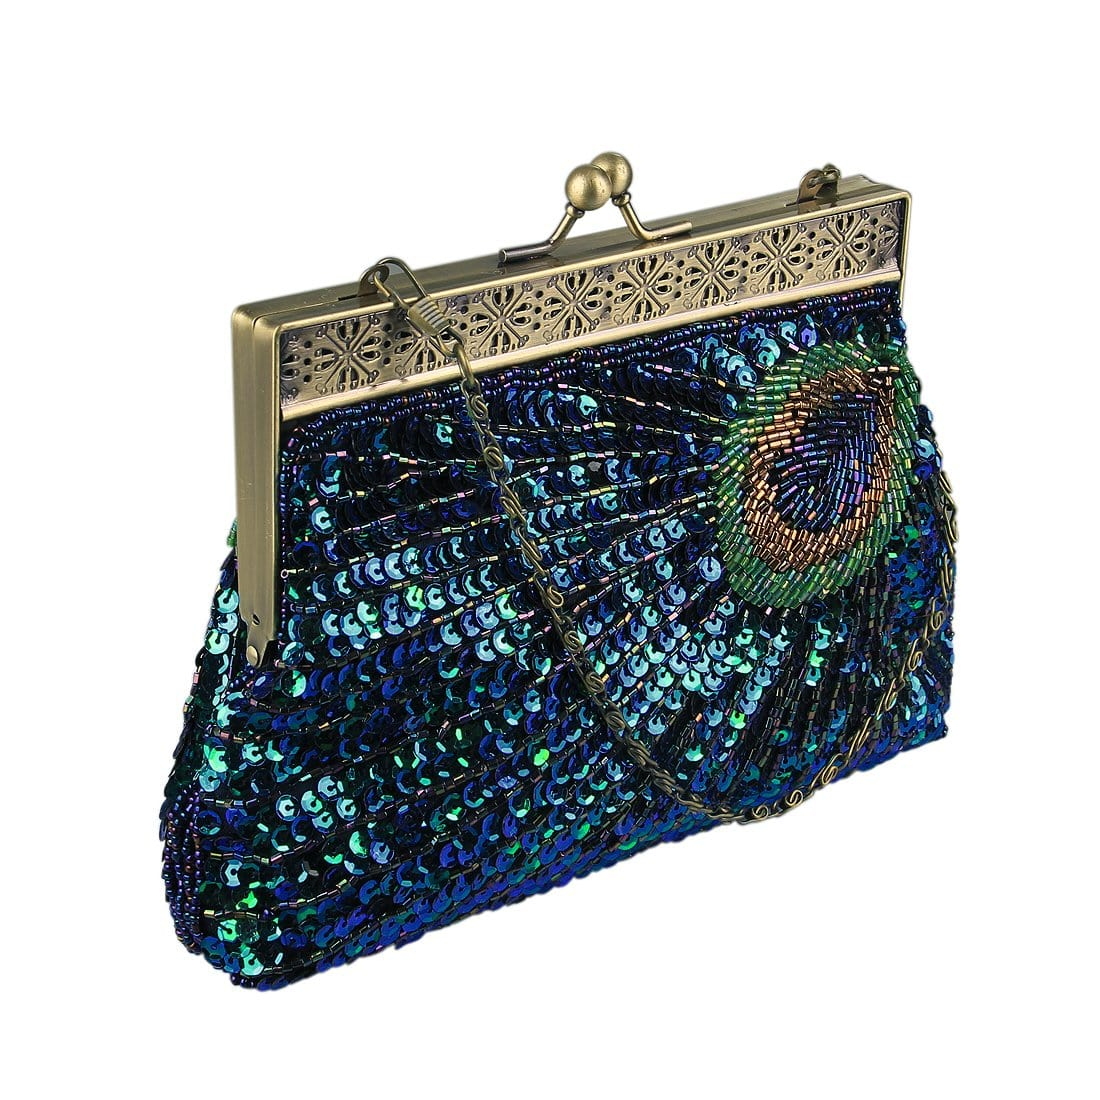 a5ff2257a7 Vintage Clutch Teal Peacock Antique Beaded Sequin Evening Handbag Sunburst  Navy and Turquoise Eye Catching Purse